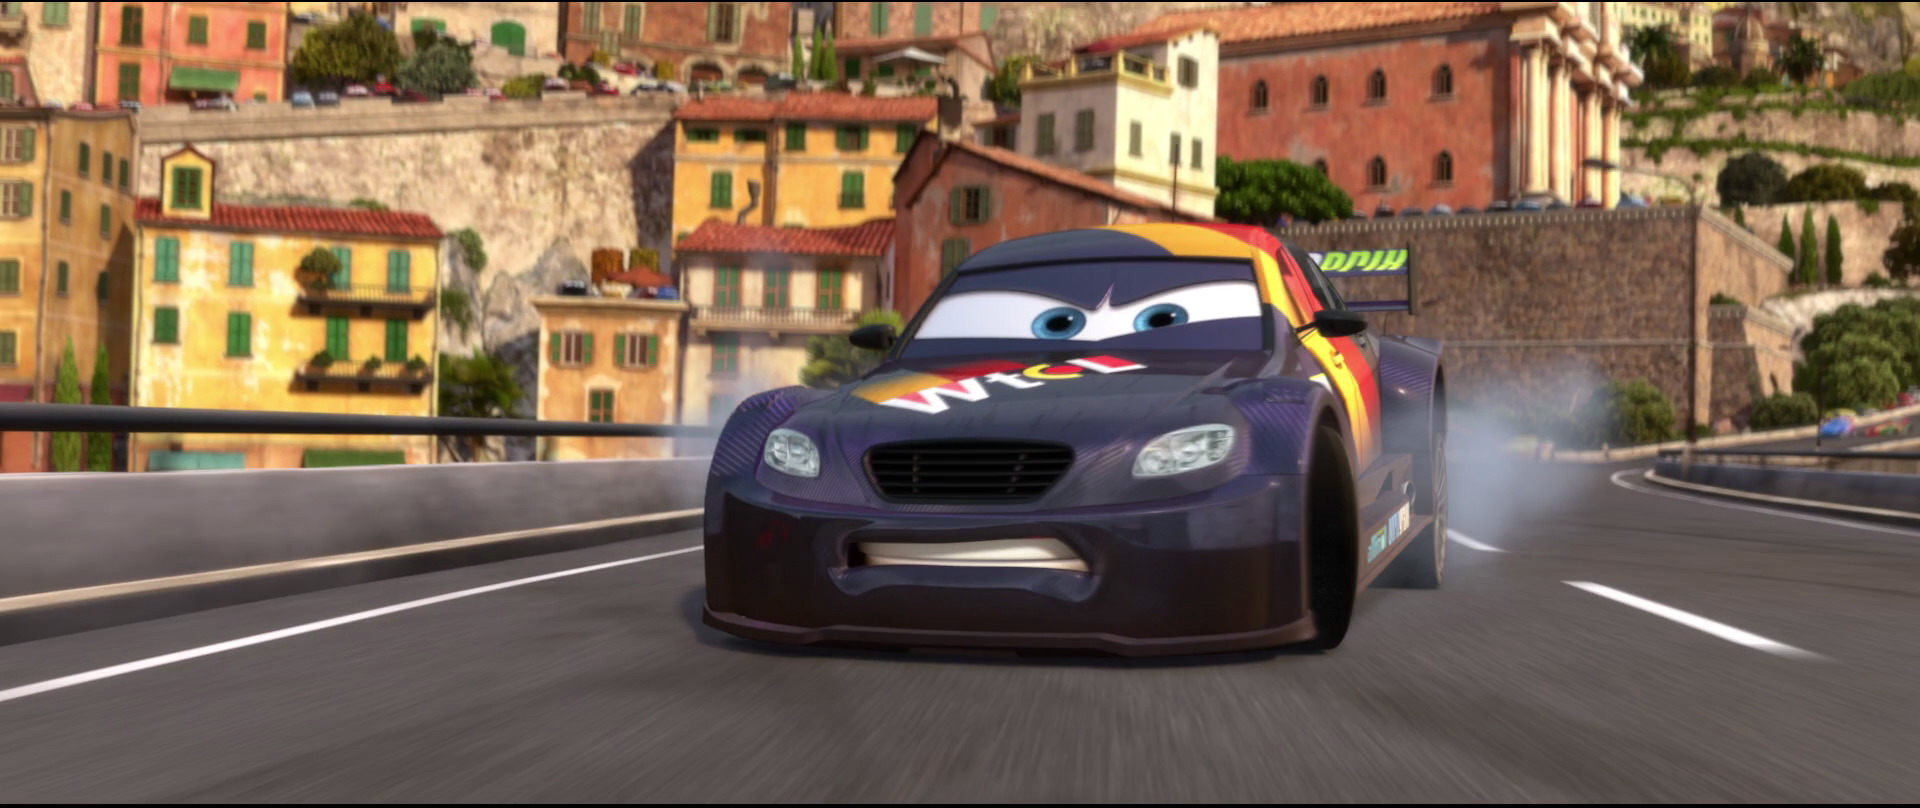 Image - Max Schnell Cars 2.png | World of Cars Wiki | FANDOM ...